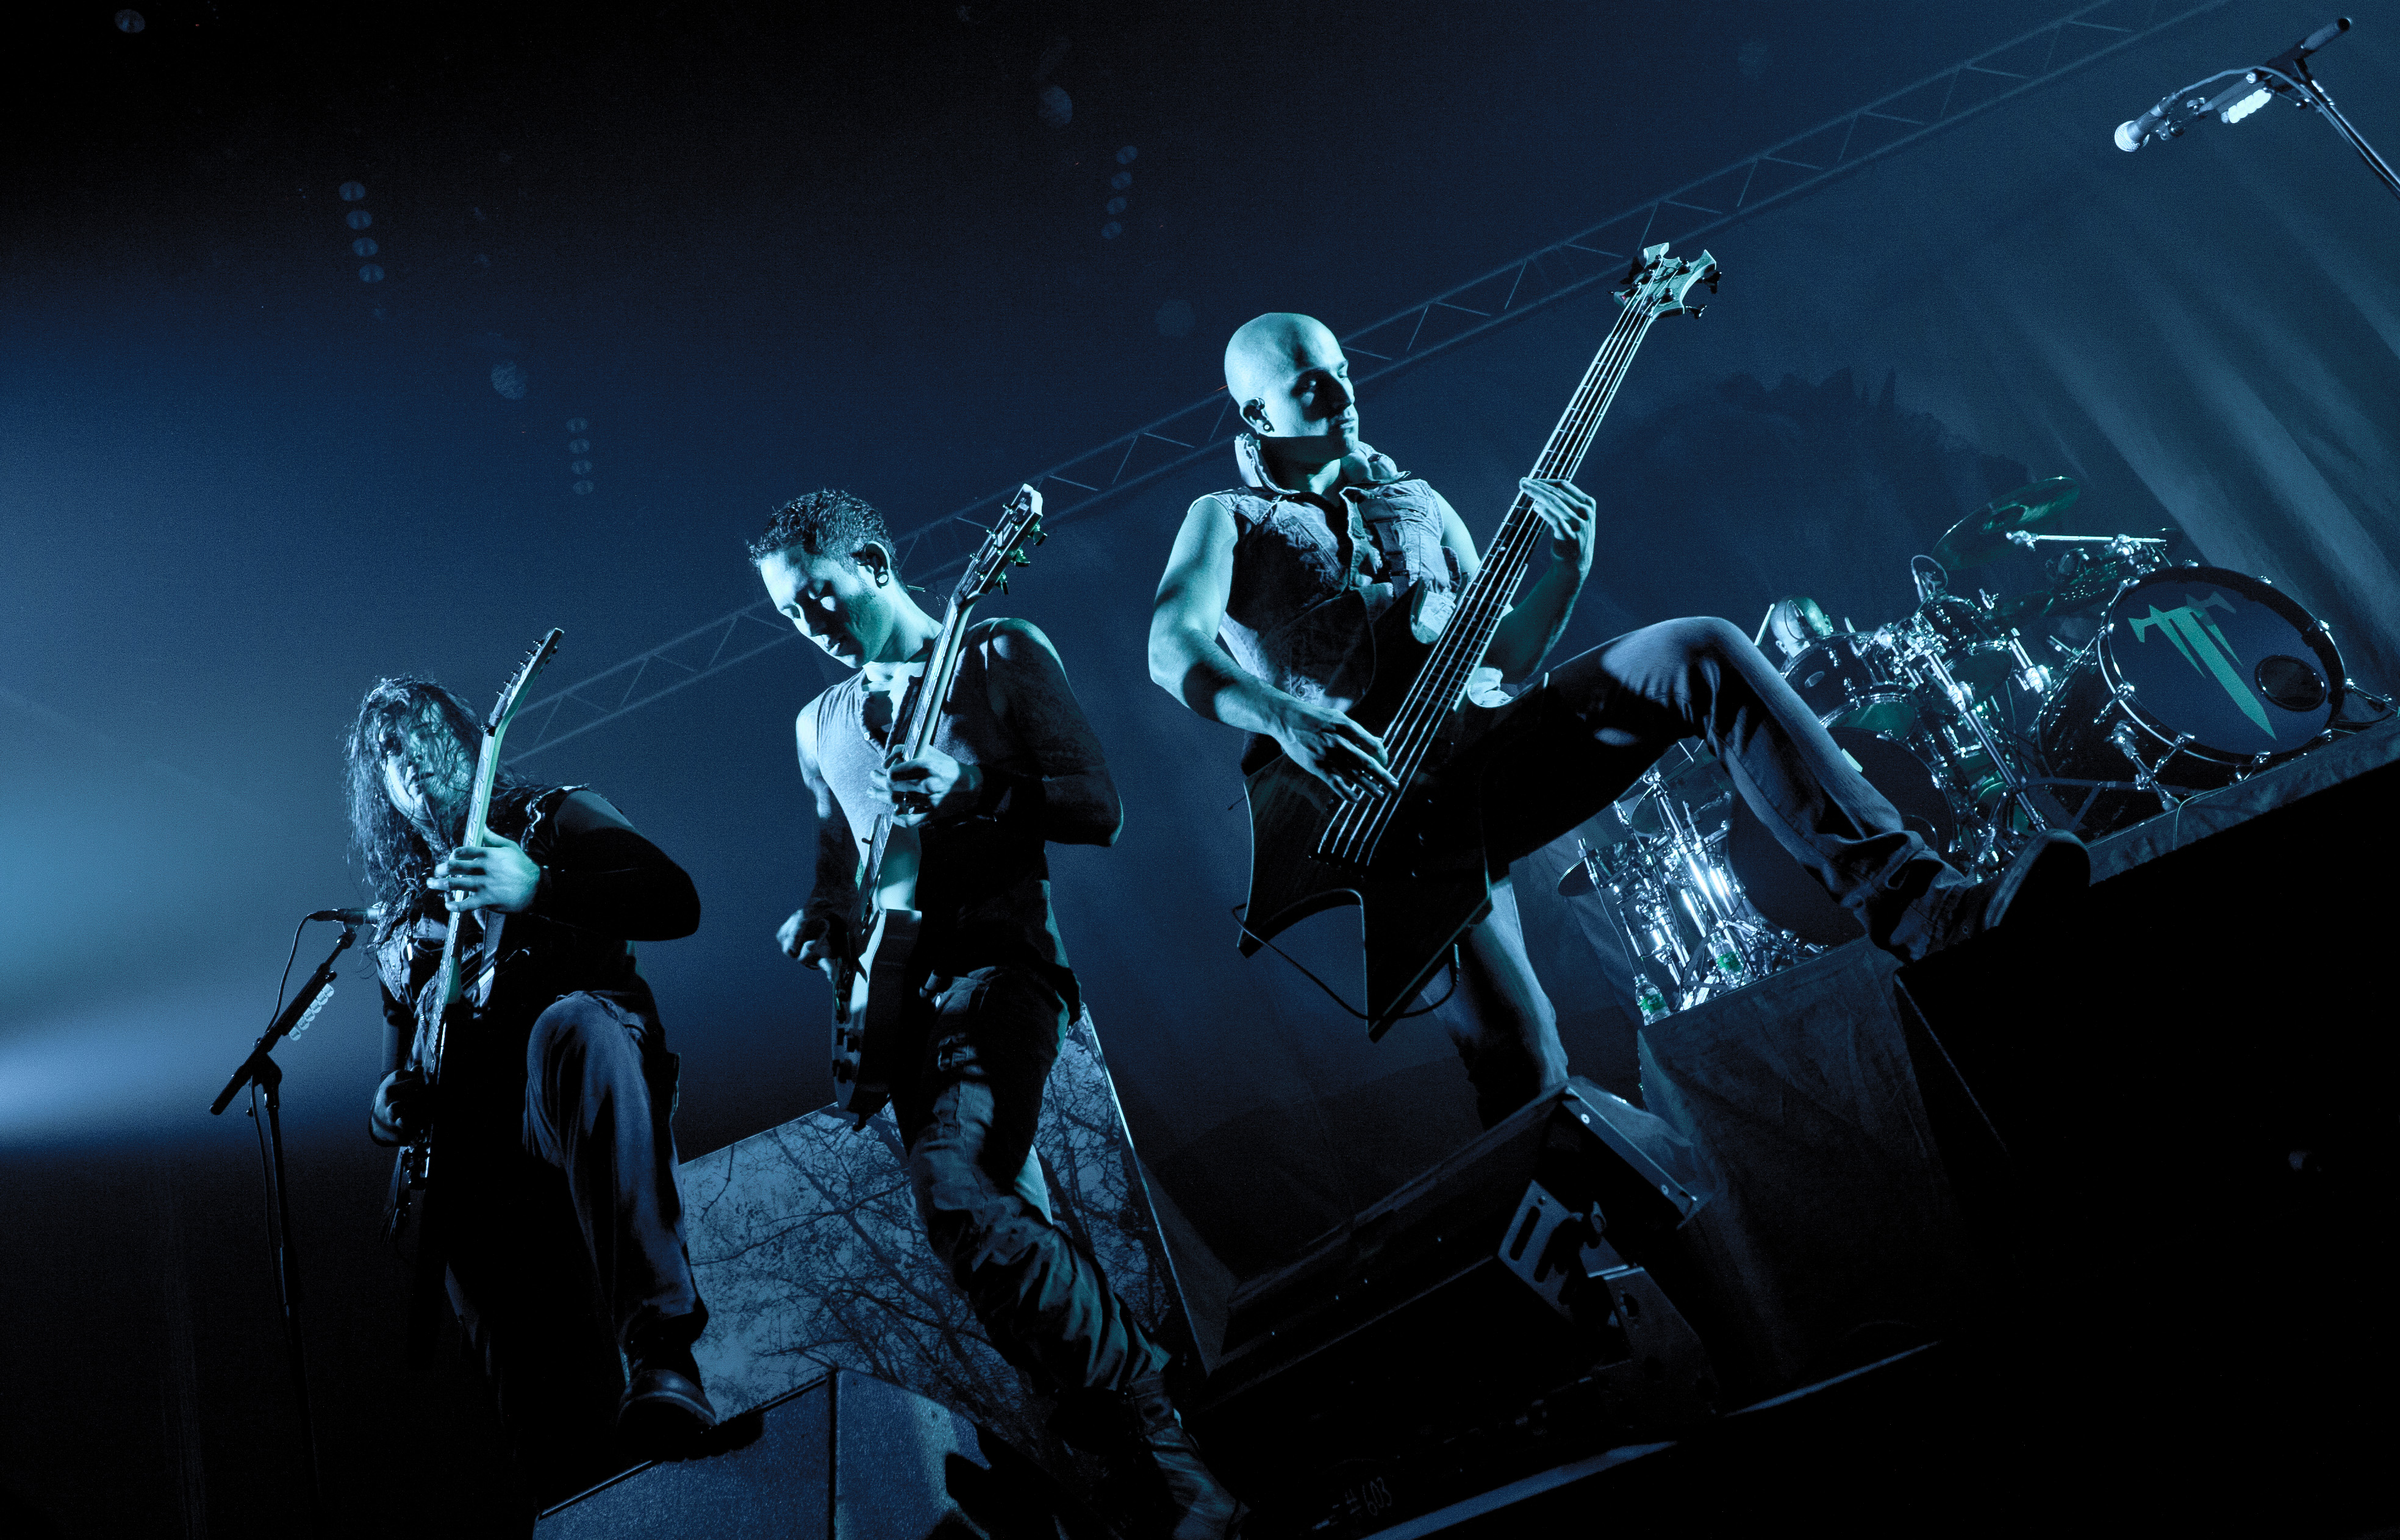 in_flames_sounds_of_a_playground_fading_tour_2011_muenchen_3_20111124_1190447267